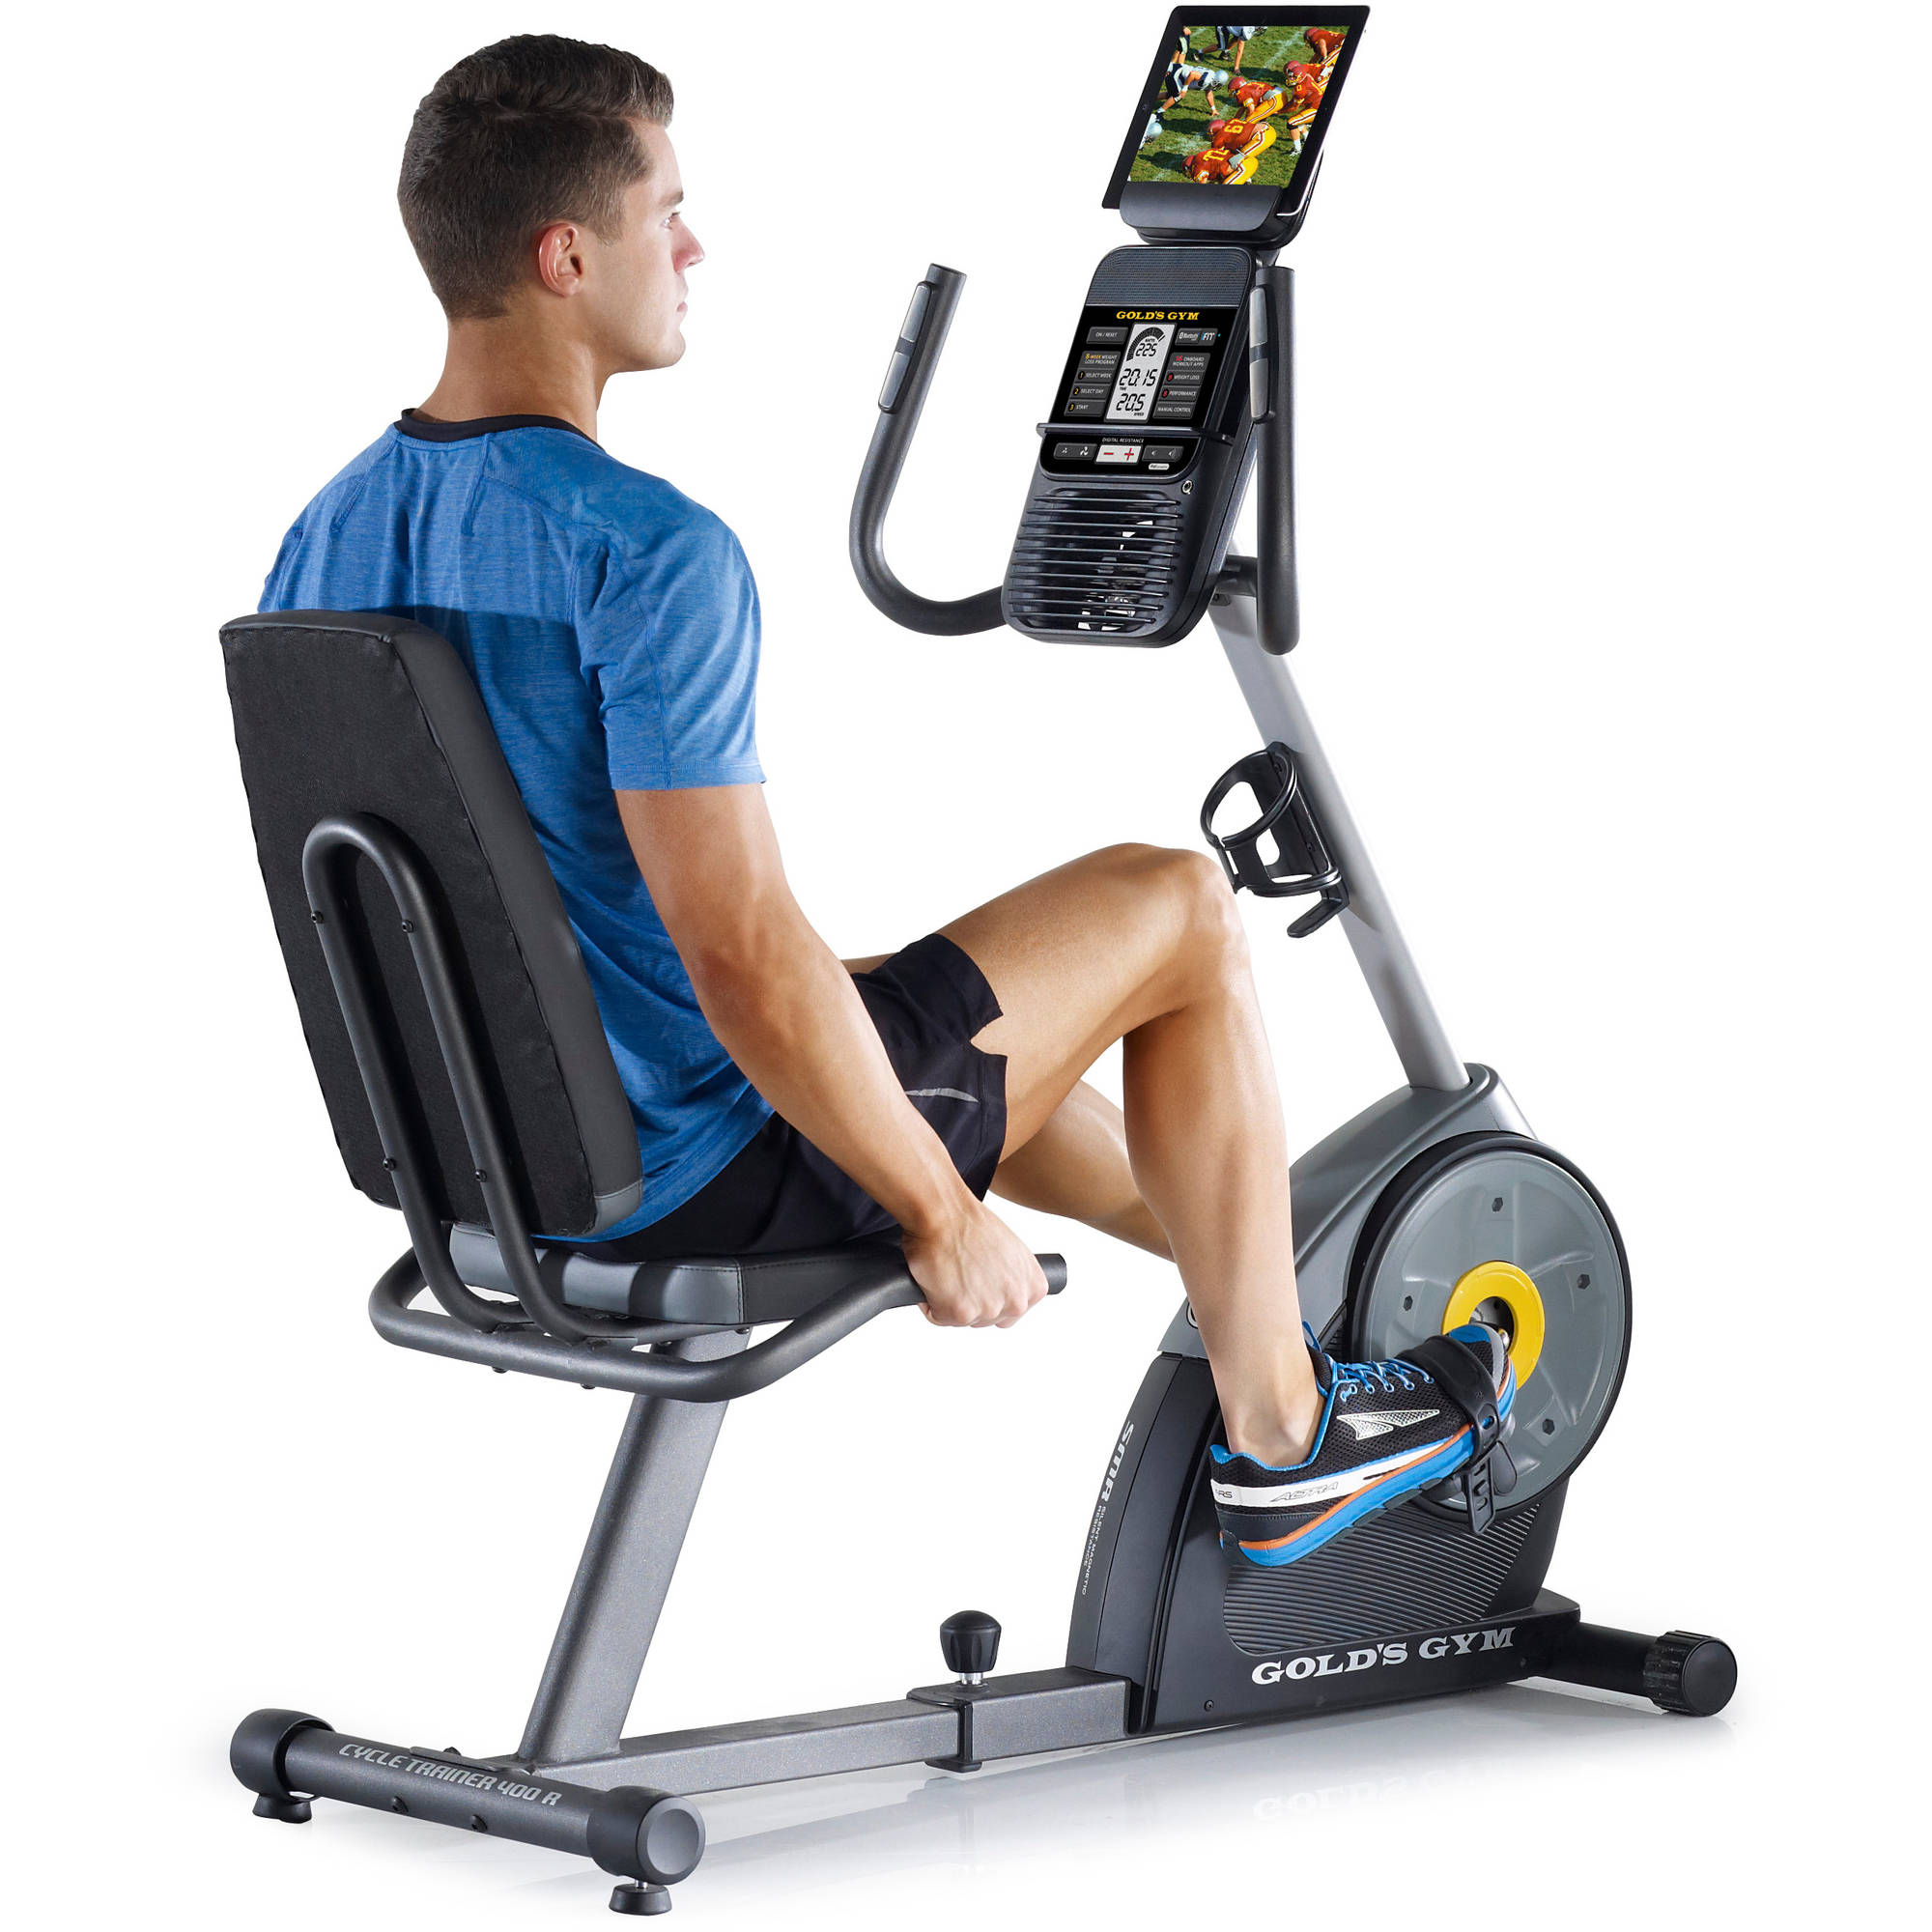 Exercise Bike In Walmart: Schwinn 230 Recumbent Bike, MY13